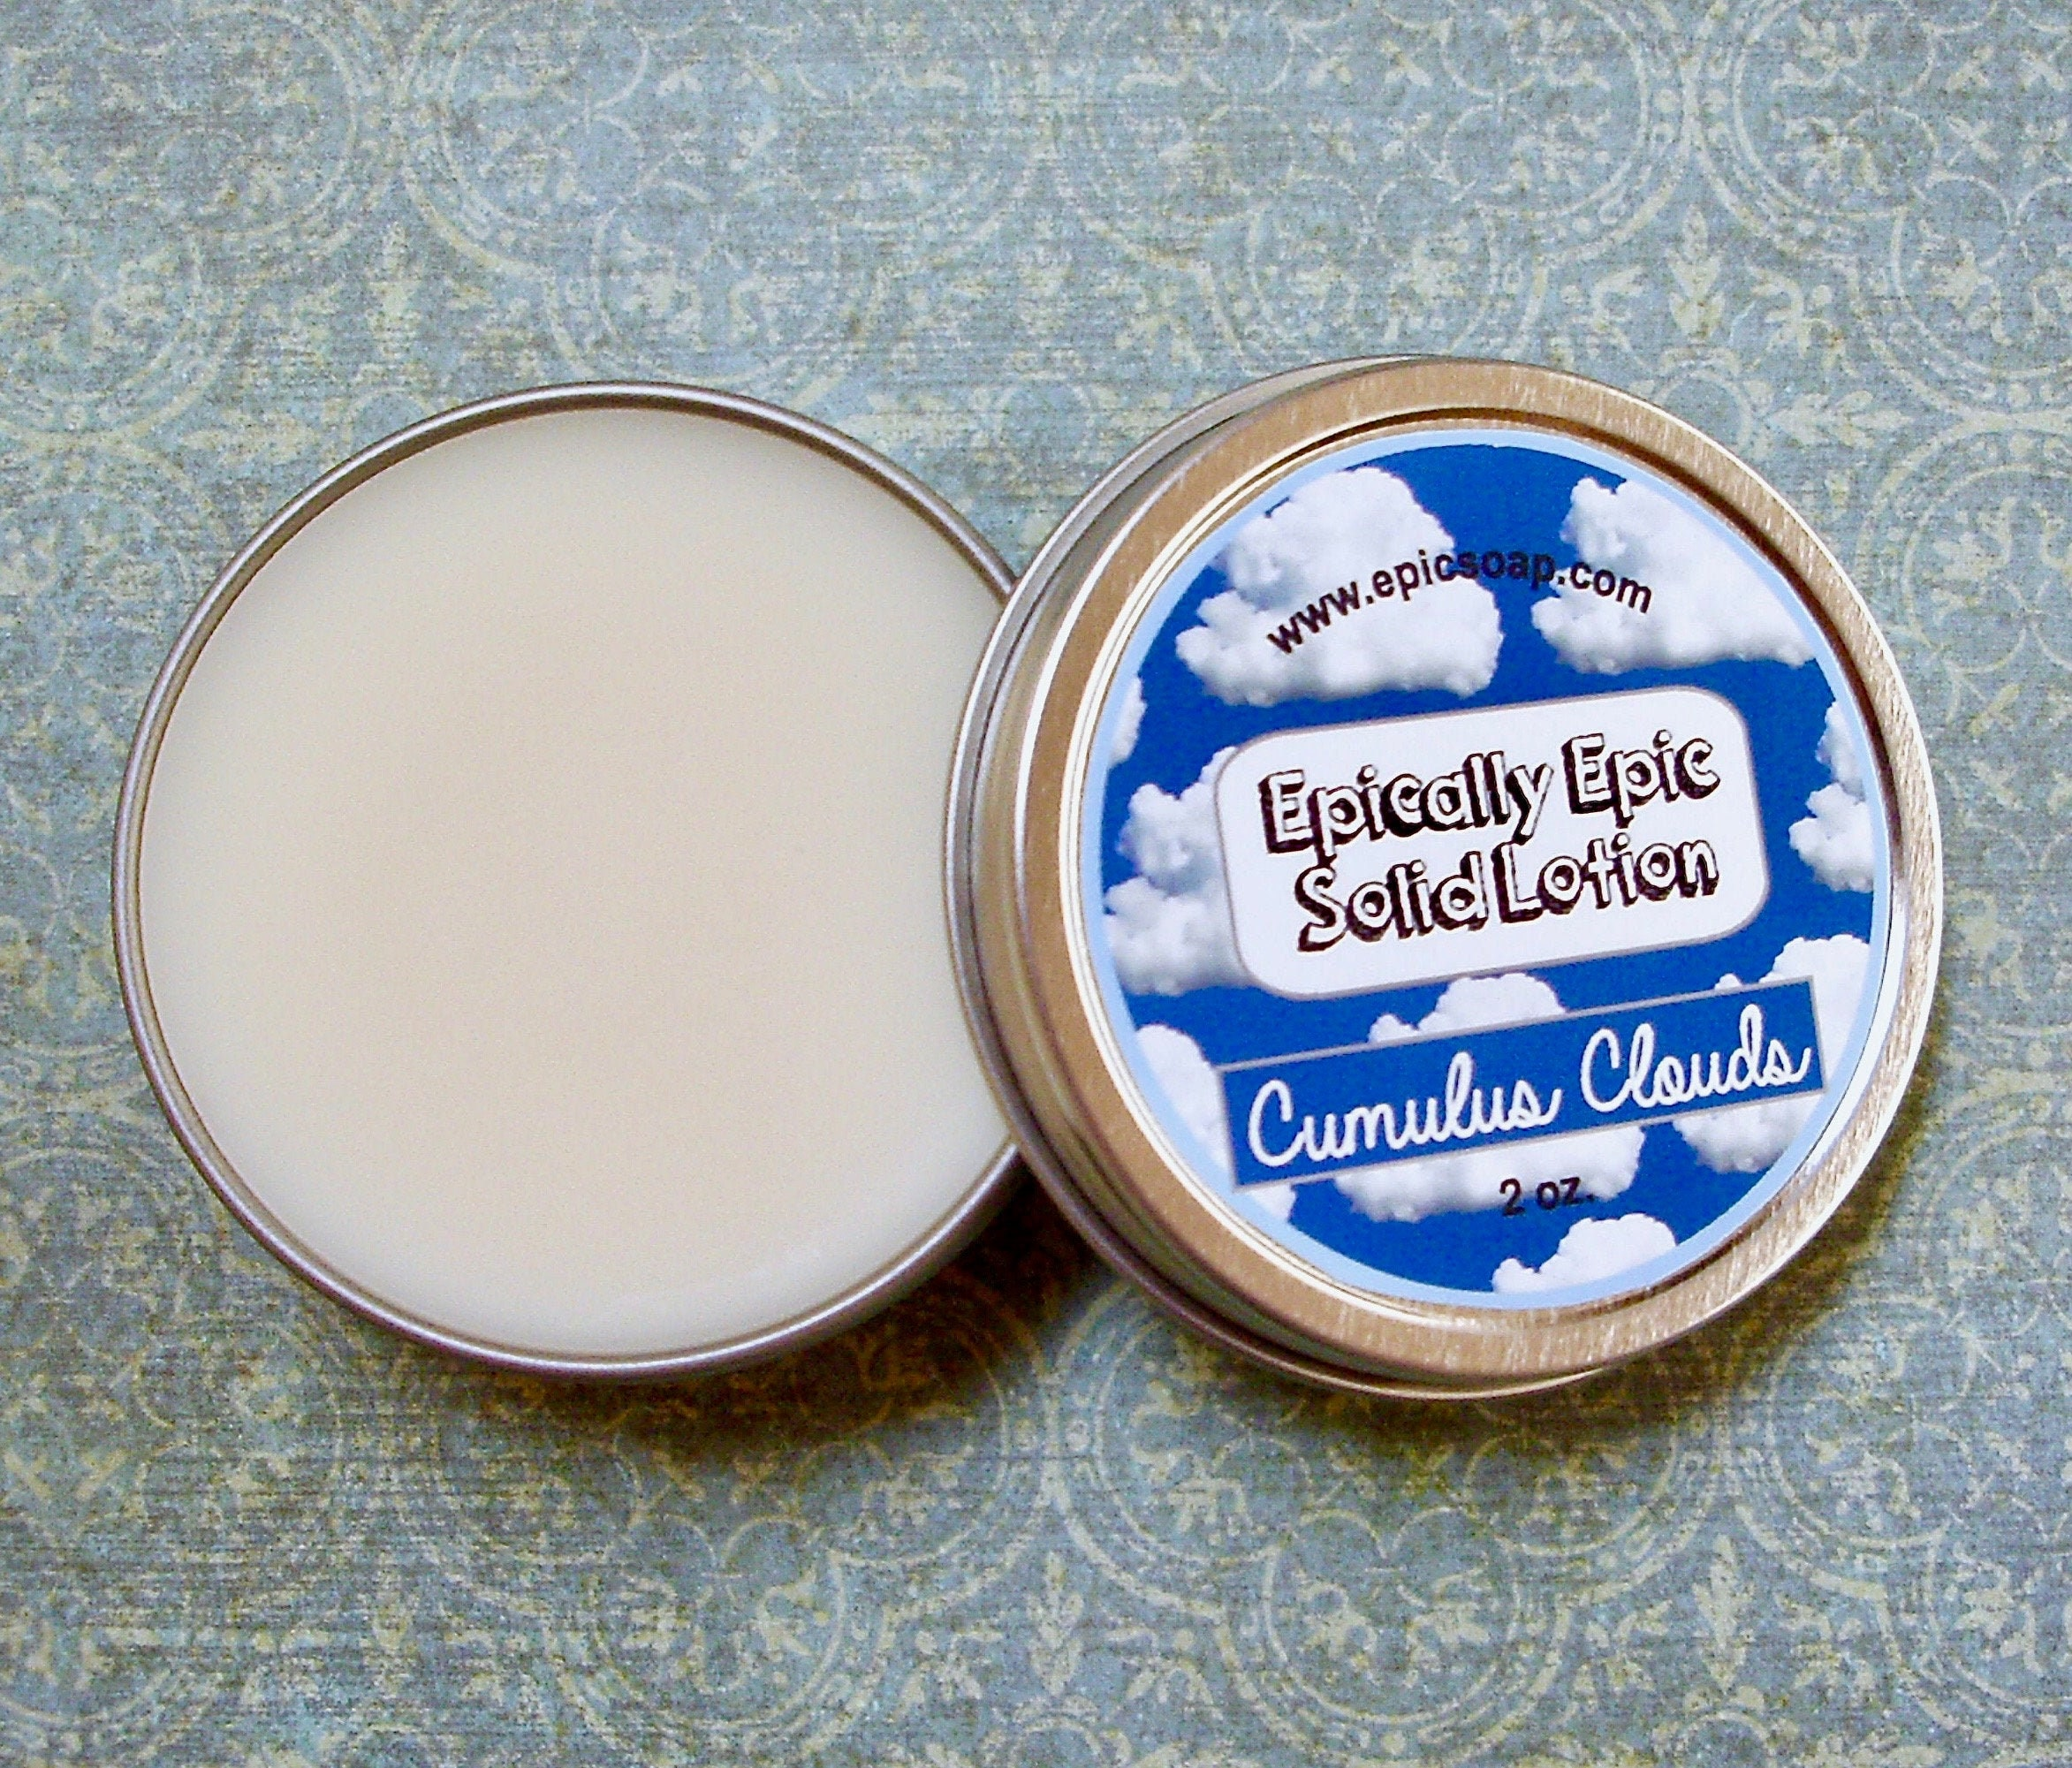 Cumulus,Clouds,Many,Purpose,Solid,Lotion,-,Limited,Edition,Into,the,Summer,Scent,Bath_And_Beauty,hand_cream,body_butter,lotion_bar,epically_epic,solid_lotion,vegan_lotion,cuticle_butter,scented_lotion,into_the_summer,cumulus_clouds,blue_sky,clean_air_scent,white_vanilla,macadamia butter,jojoba,candelilla wax,coconut oil,olive squalane